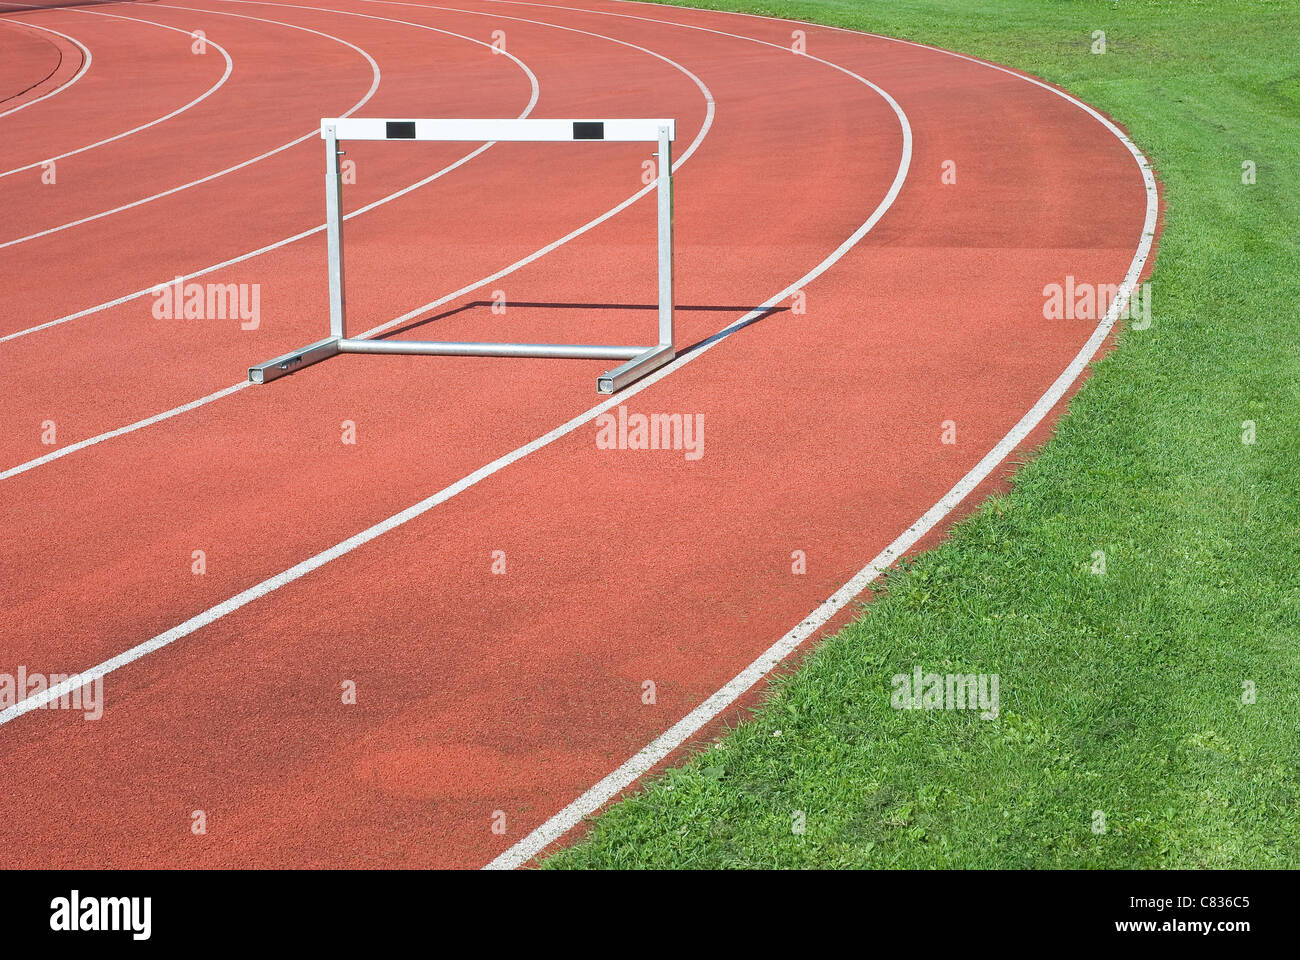 Athletics as Symbol of Personal Determination and Competitiveness - Stock Image